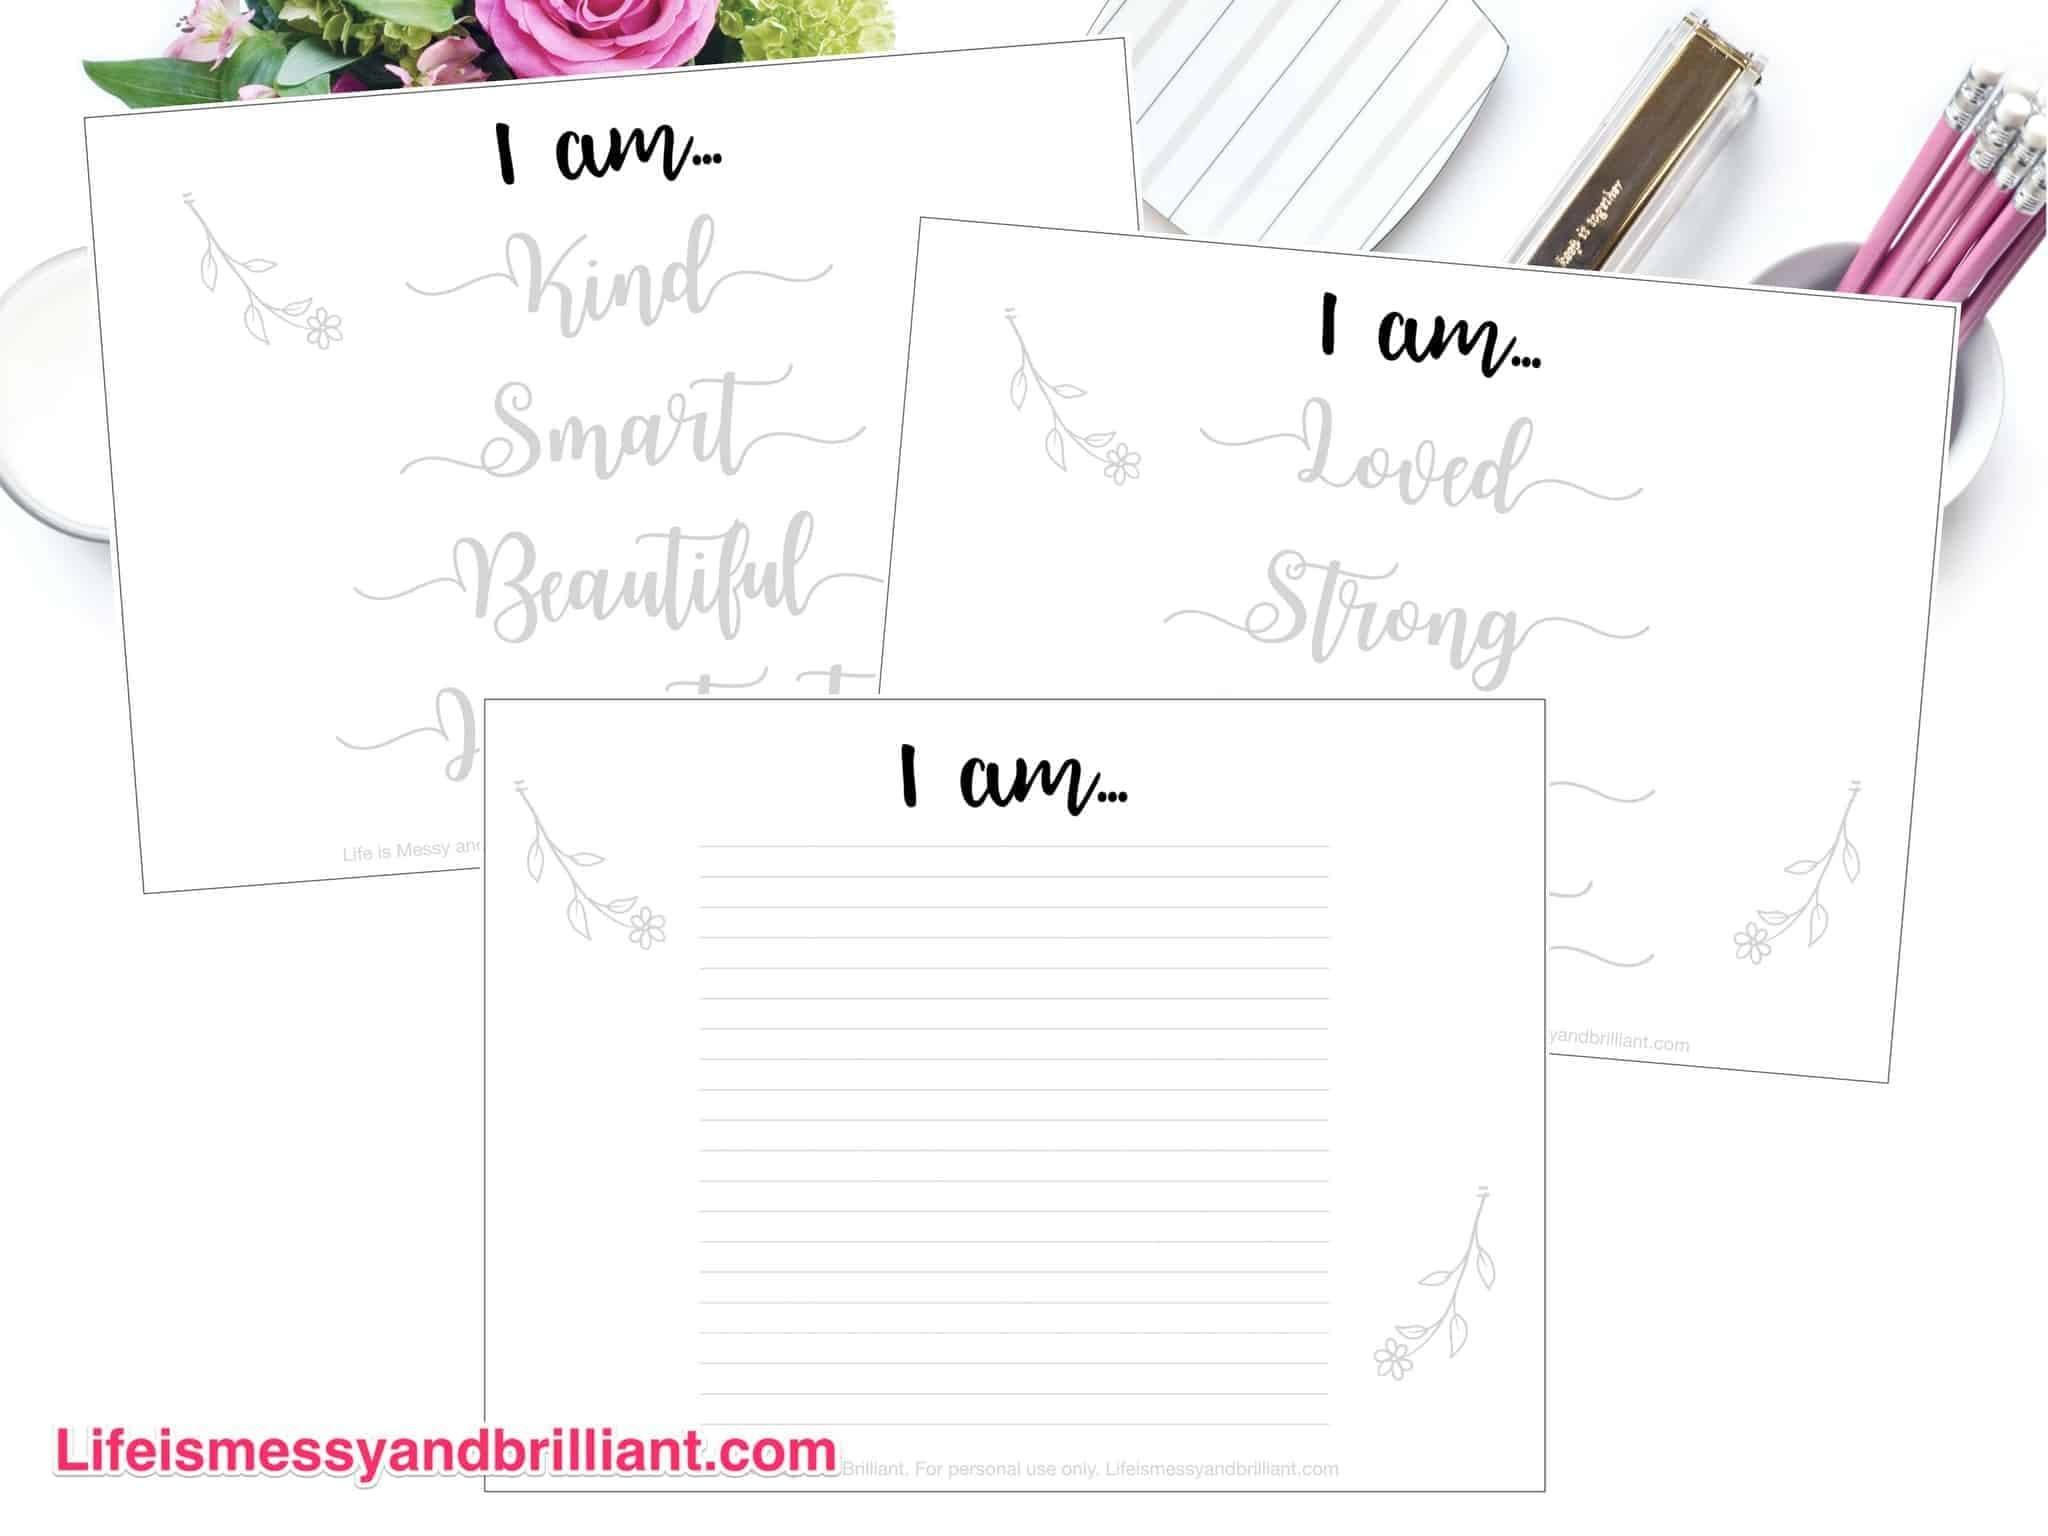 photo about Free Calligraphy Worksheets Printable known as Discover How in the direction of Letter with These types of Absolutely free Hand Lettering Worksheets